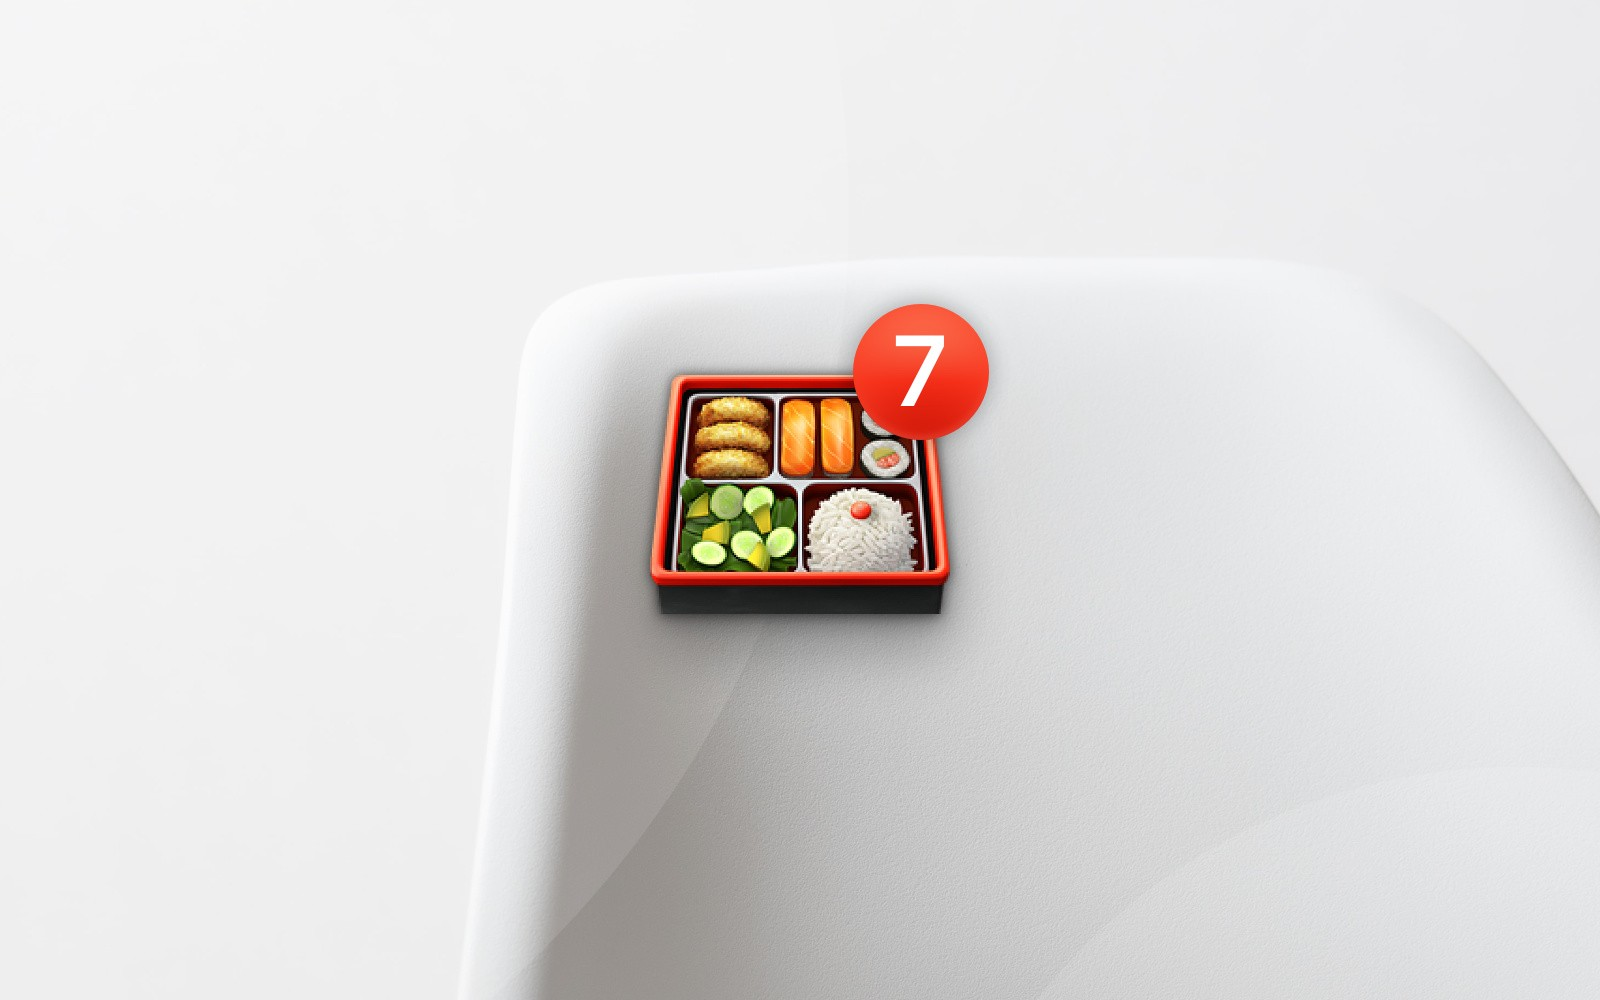 Bento box emoji with number 7 badge on mountainside with abstract white background